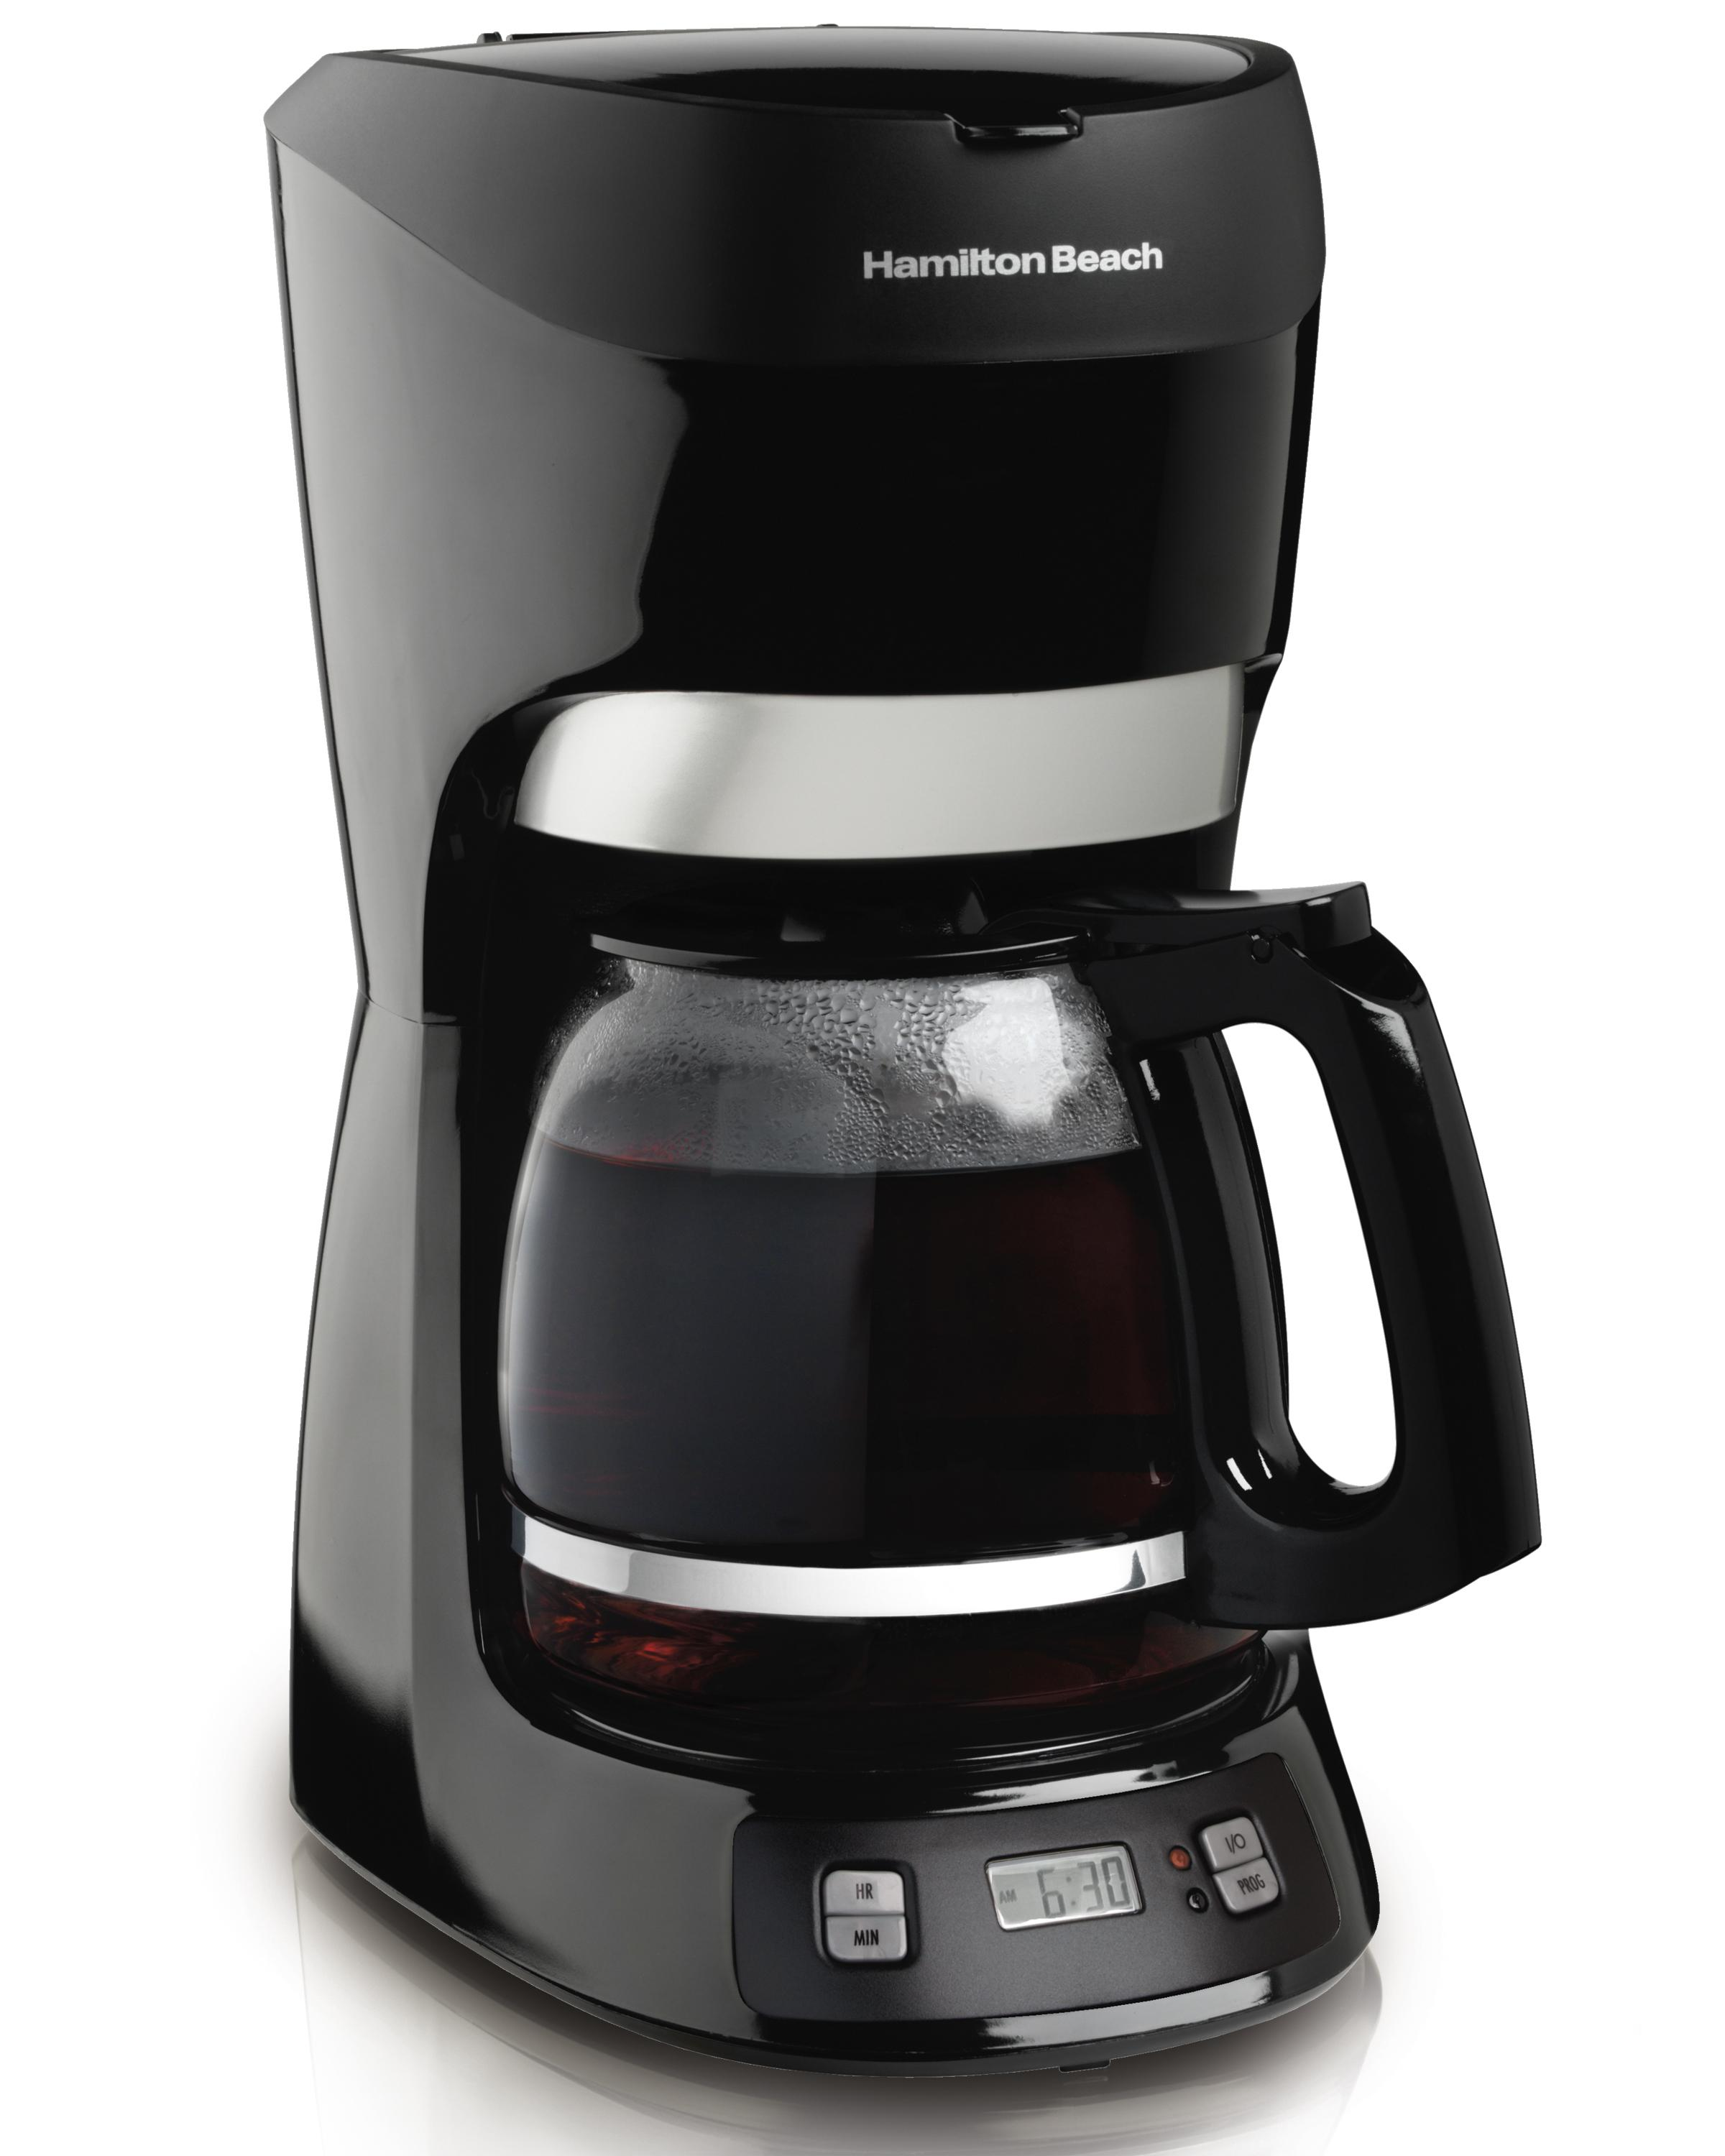 Hamilton beach 12 cup coffee maker with How to make coffee with a coffee maker